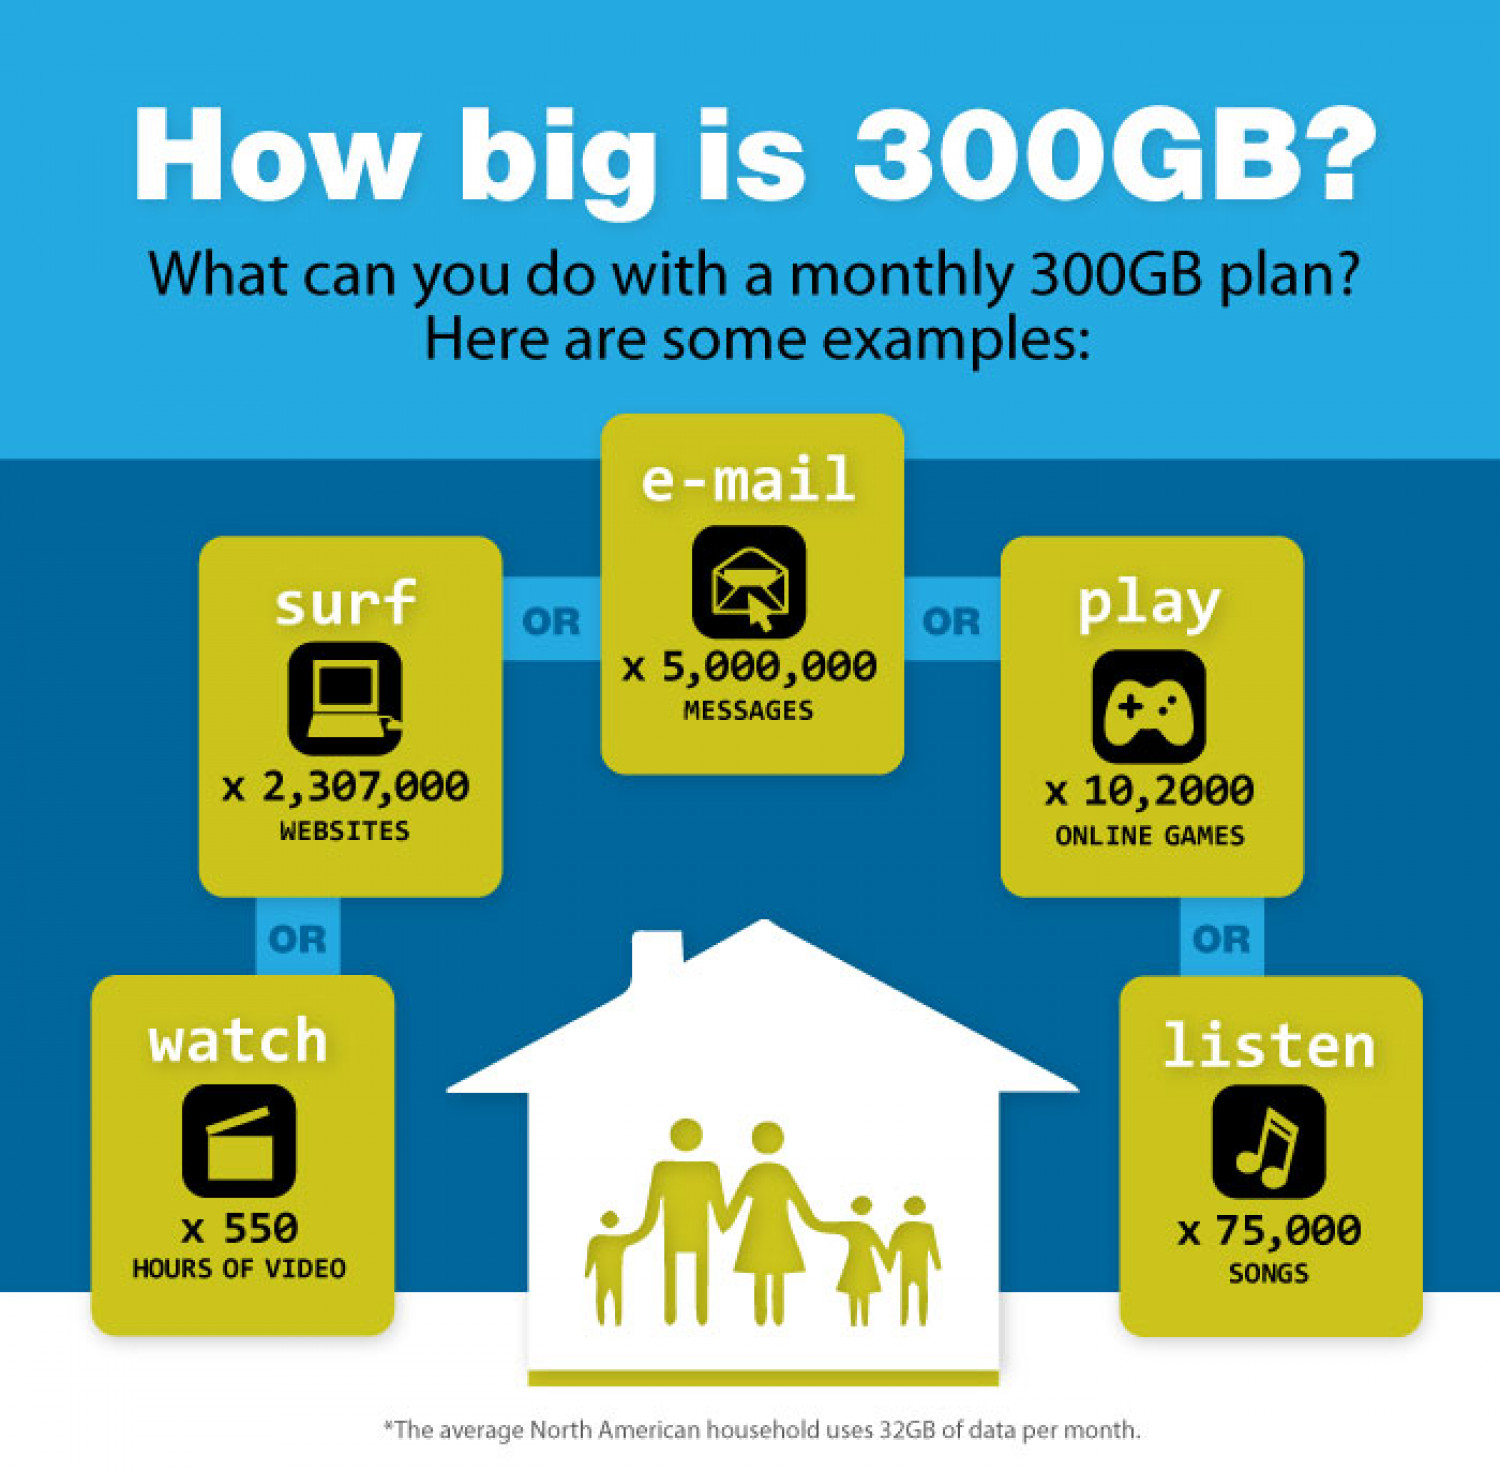 how-big-is-300gb_5035332602cf7_w1500.jpg